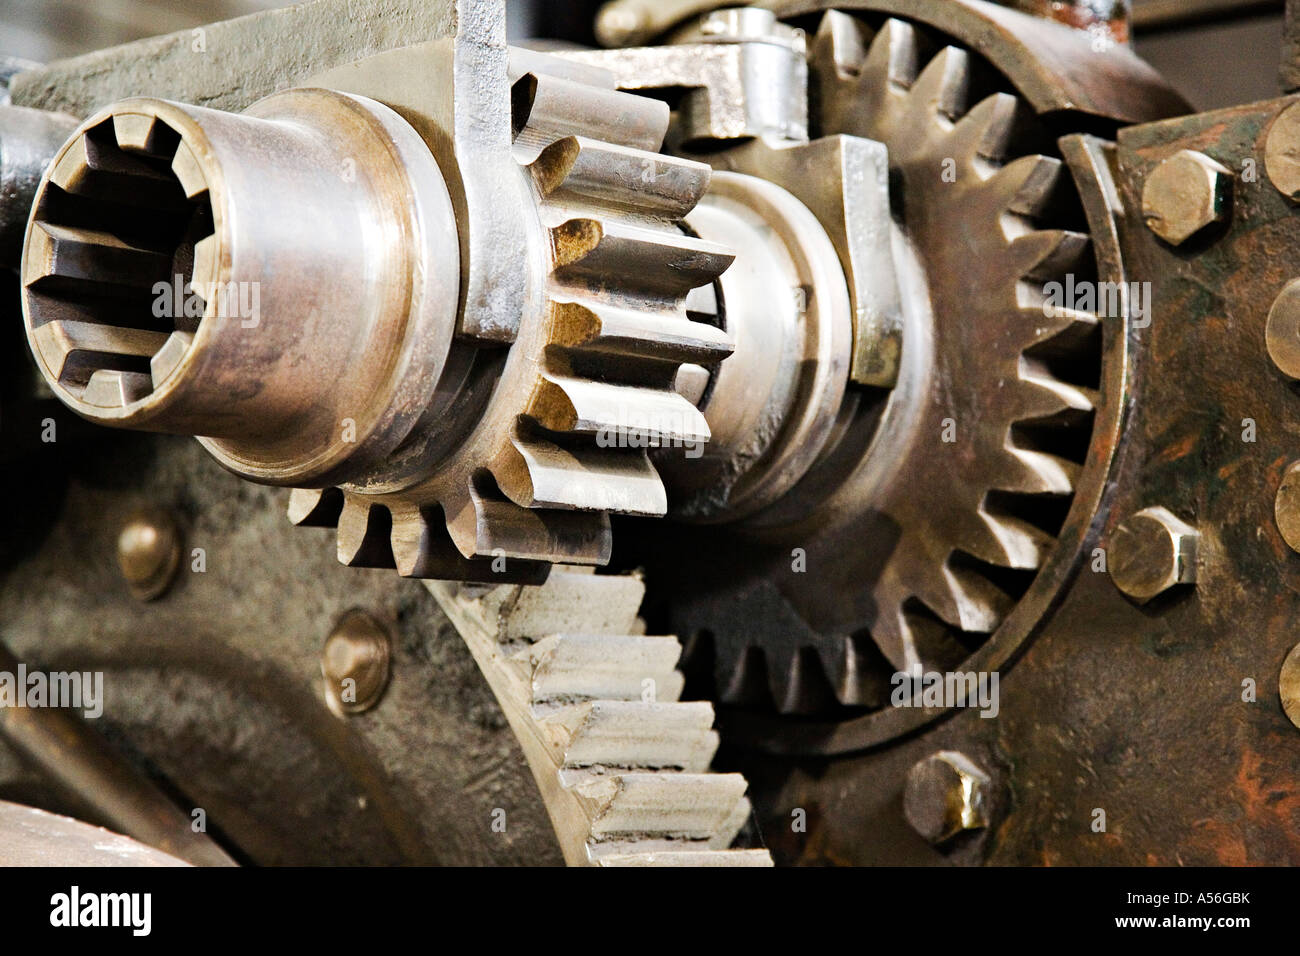 Gears, close-up - Stock Image